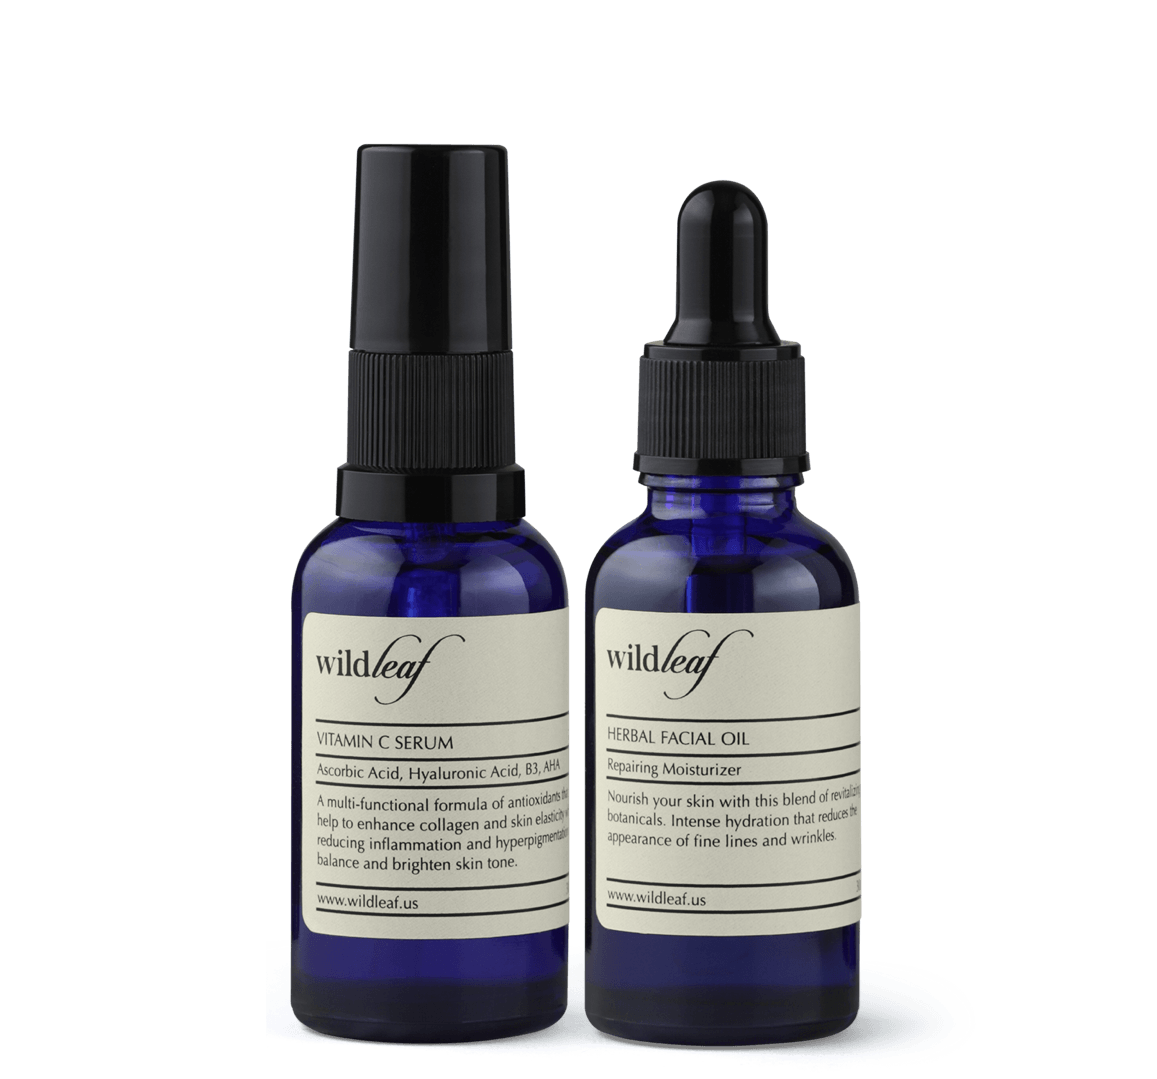 The Hydration Duo - Vitamin C Serum + Herbal Facial Oil